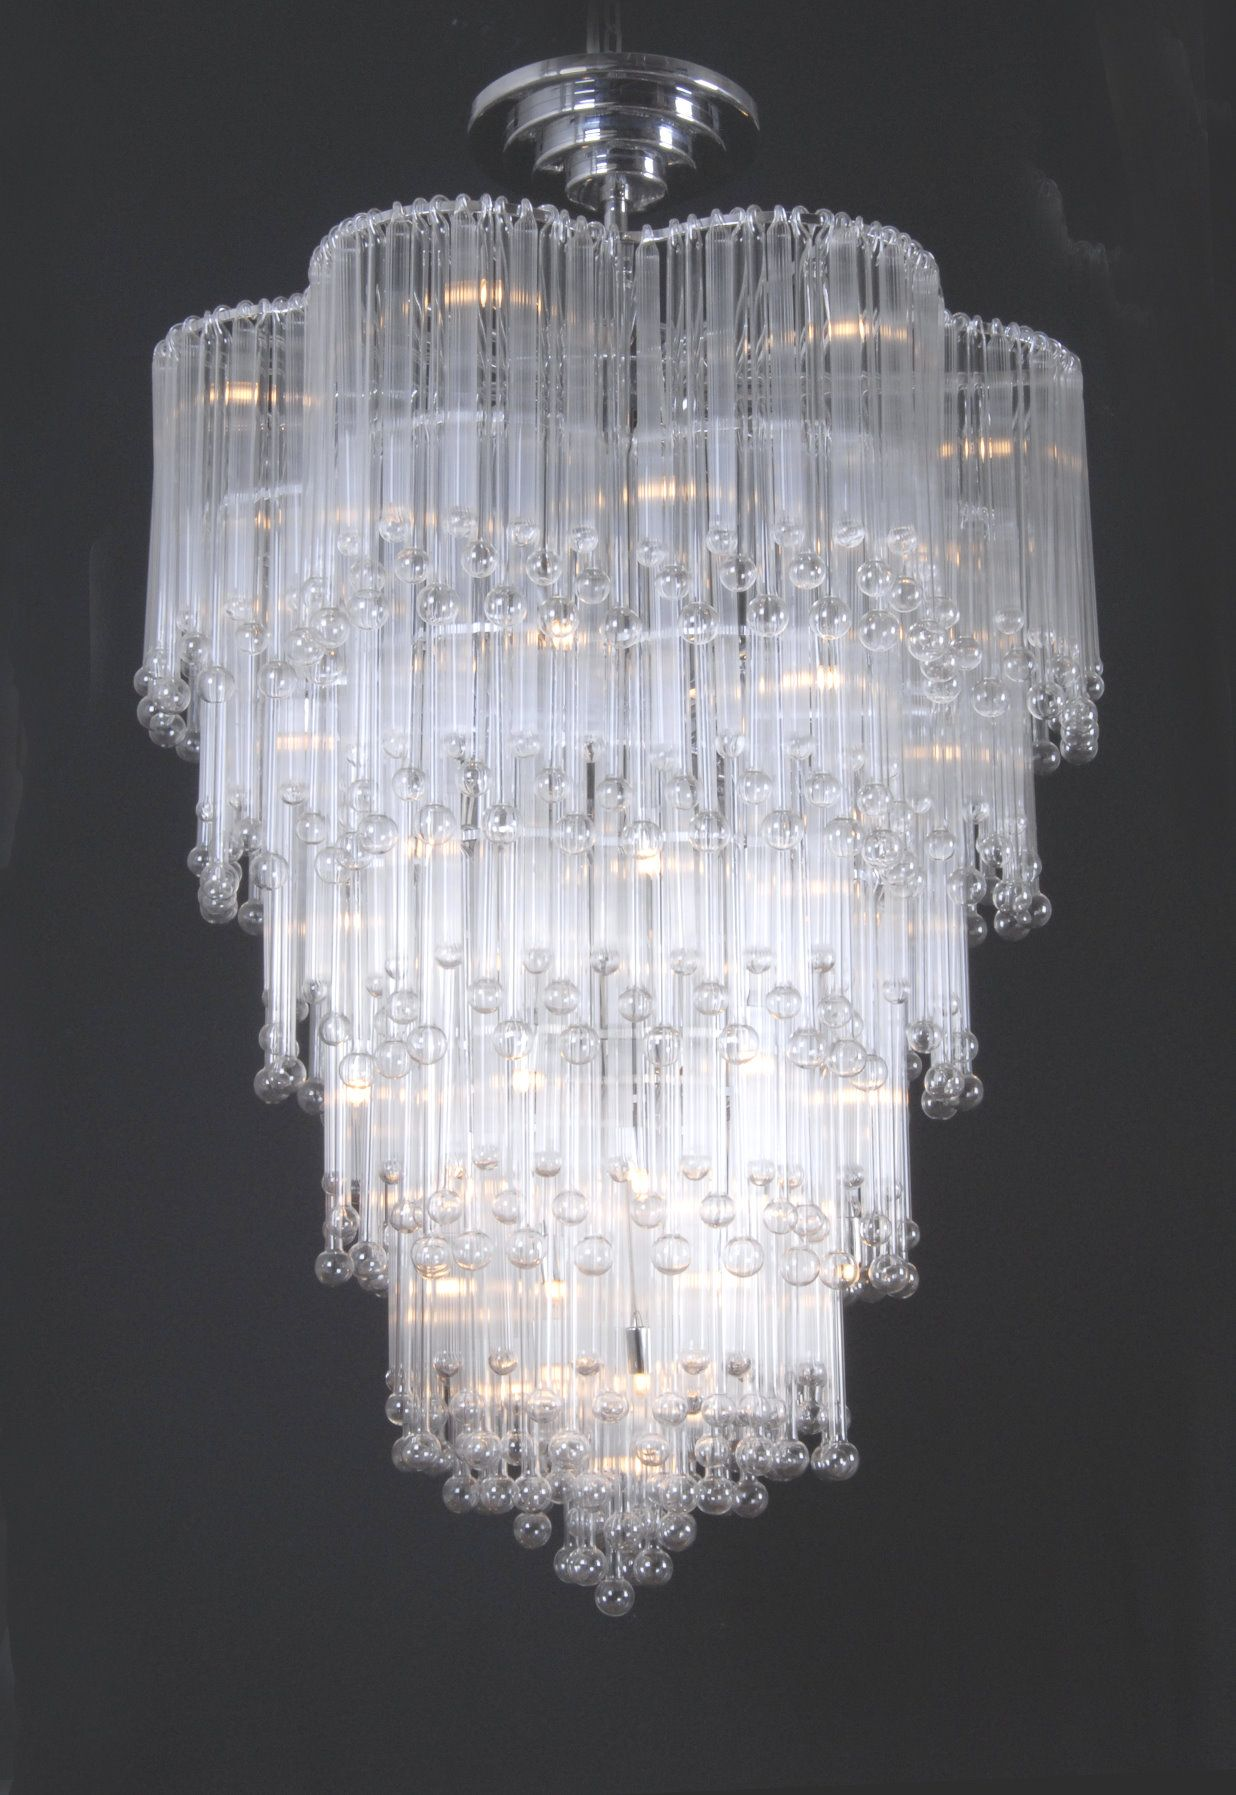 Chic Chandeliers In 2019 Shopswell Lists Come Follow